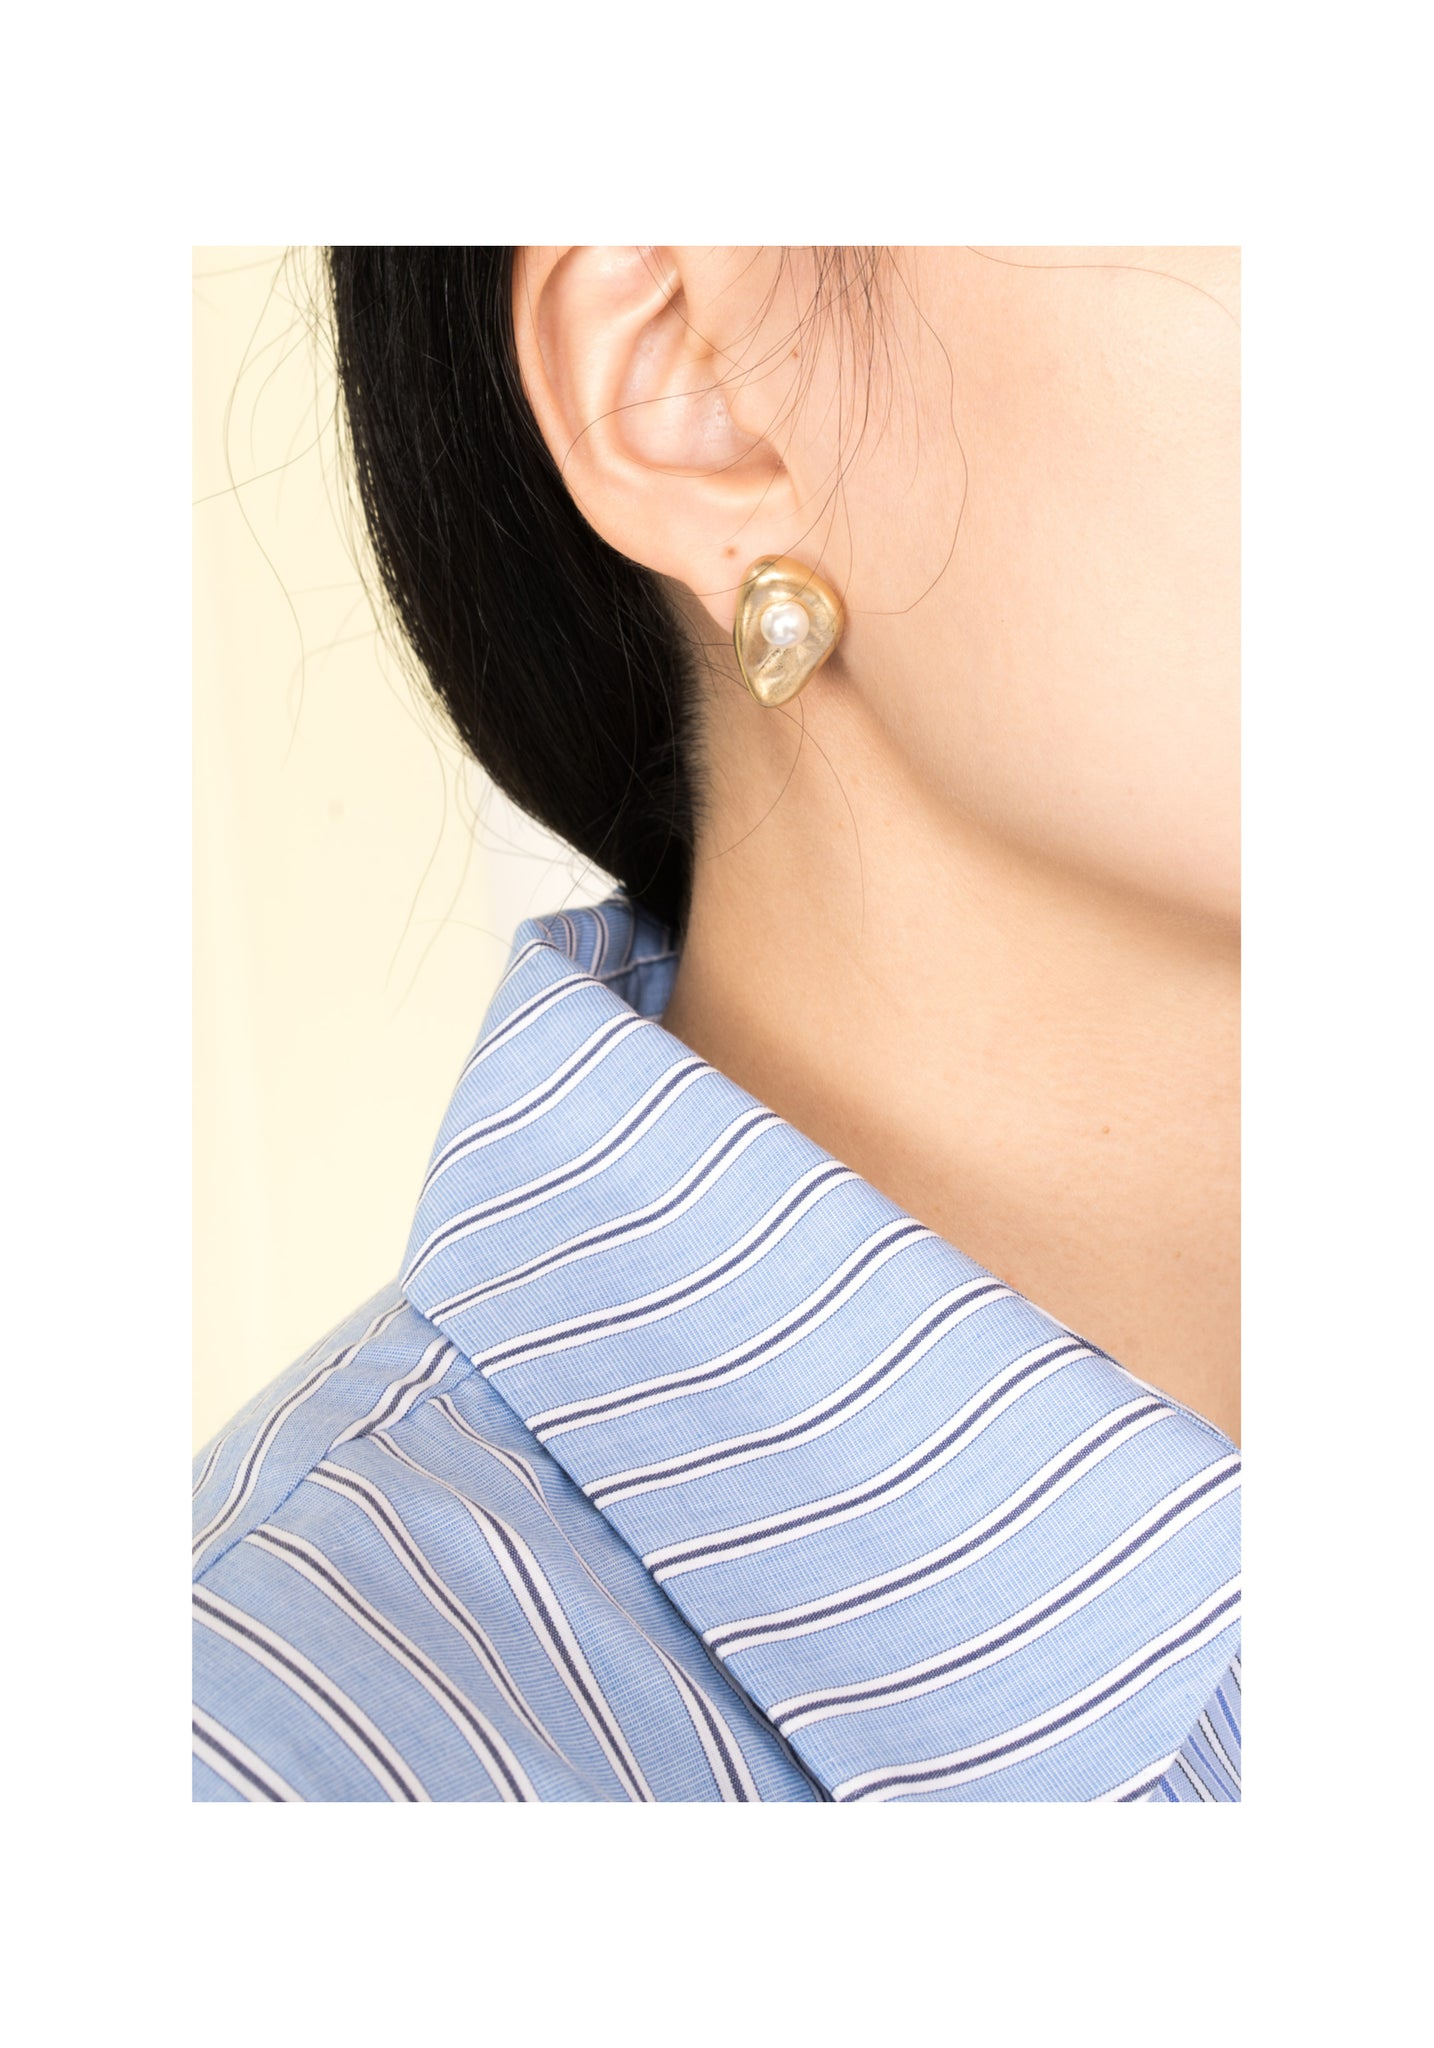 Pearl On Golden Stone Earrings - whoami